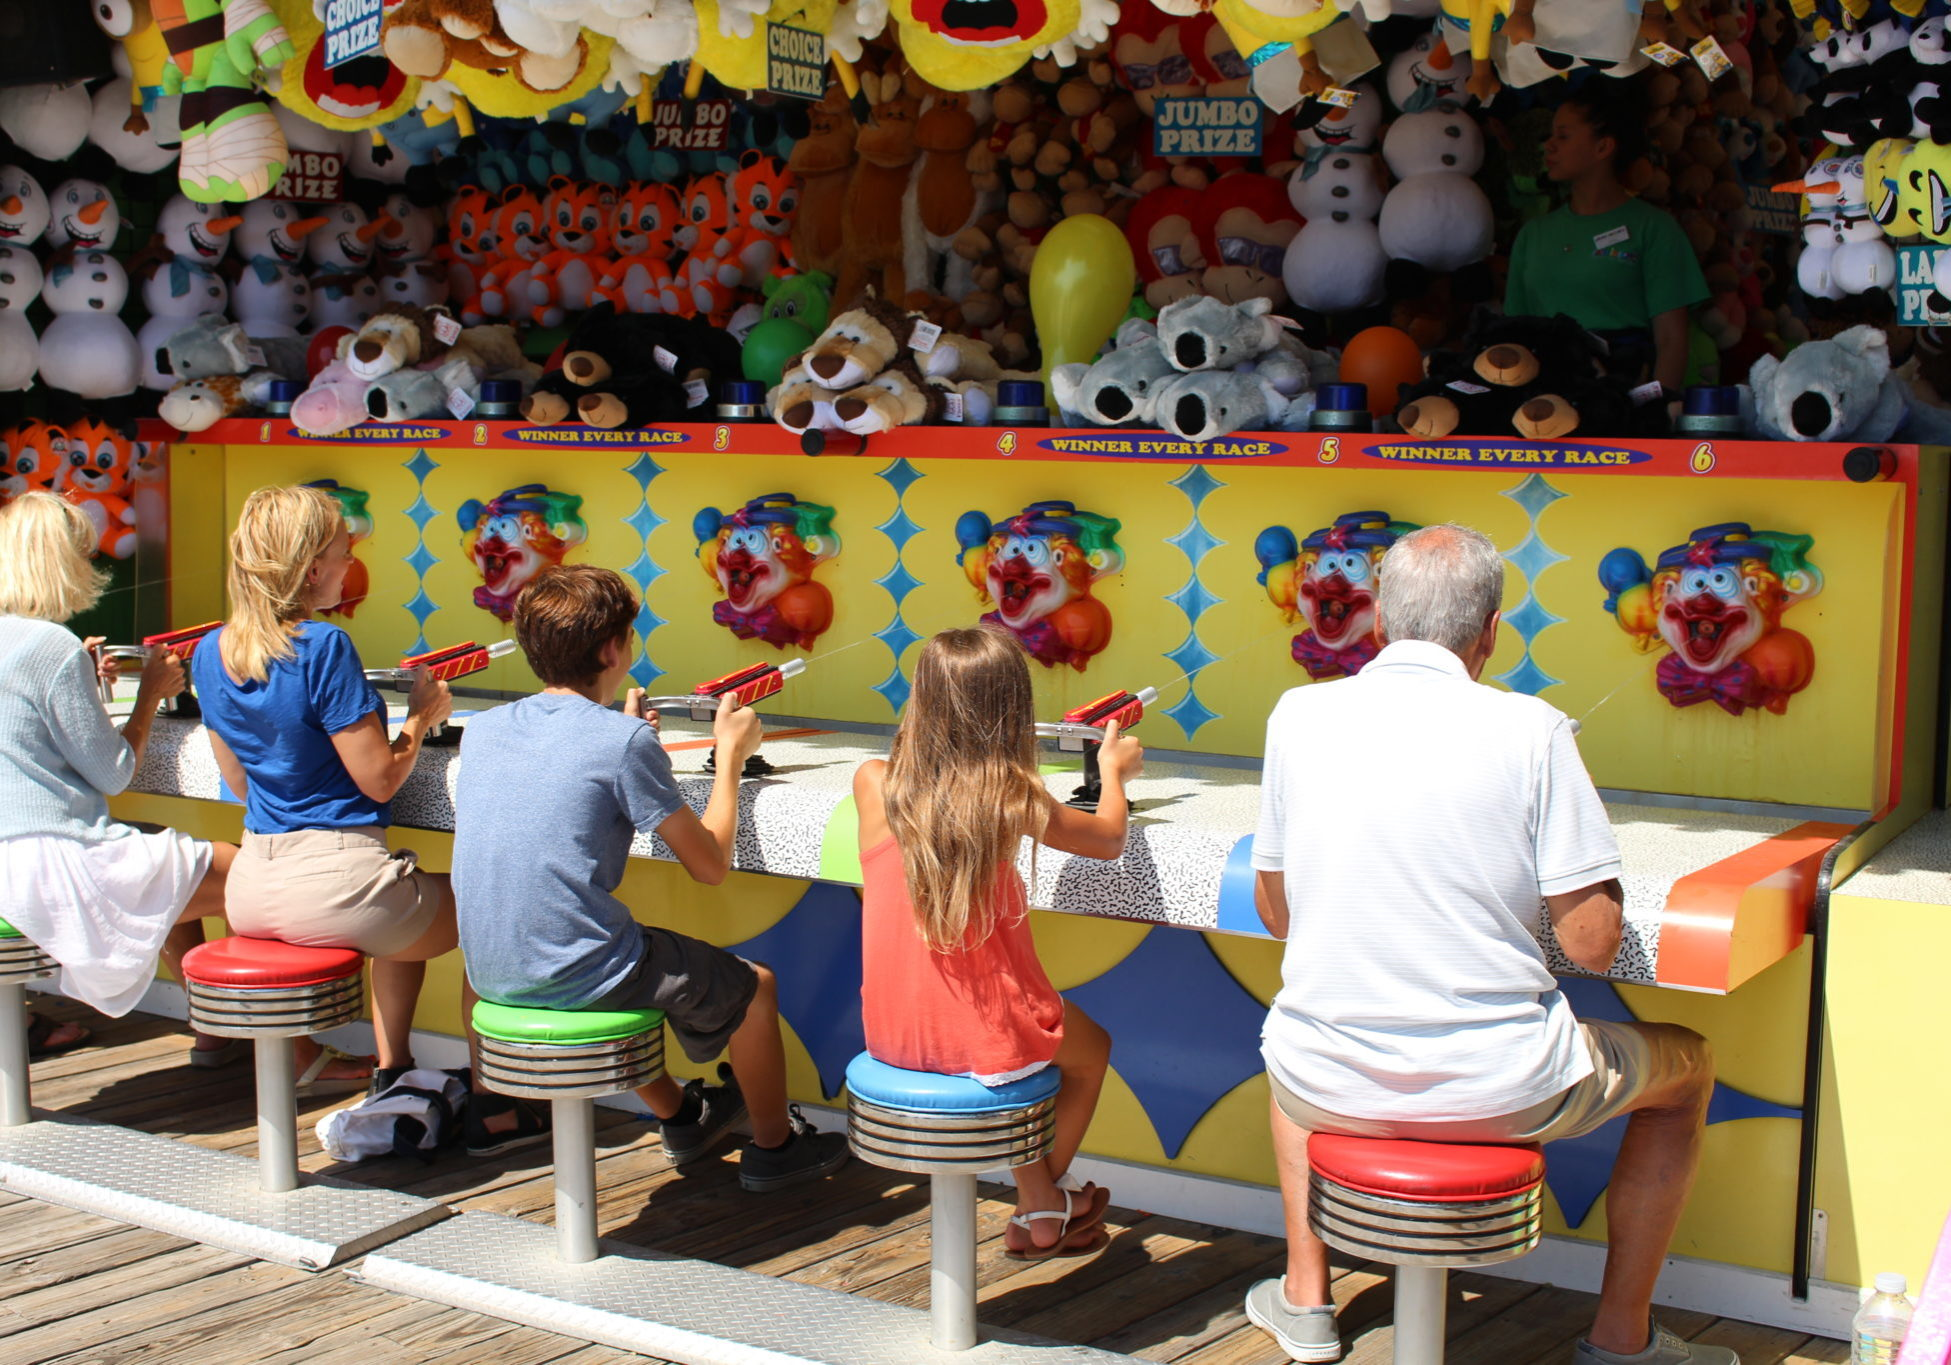 Photo of people playing a boardwalk game.